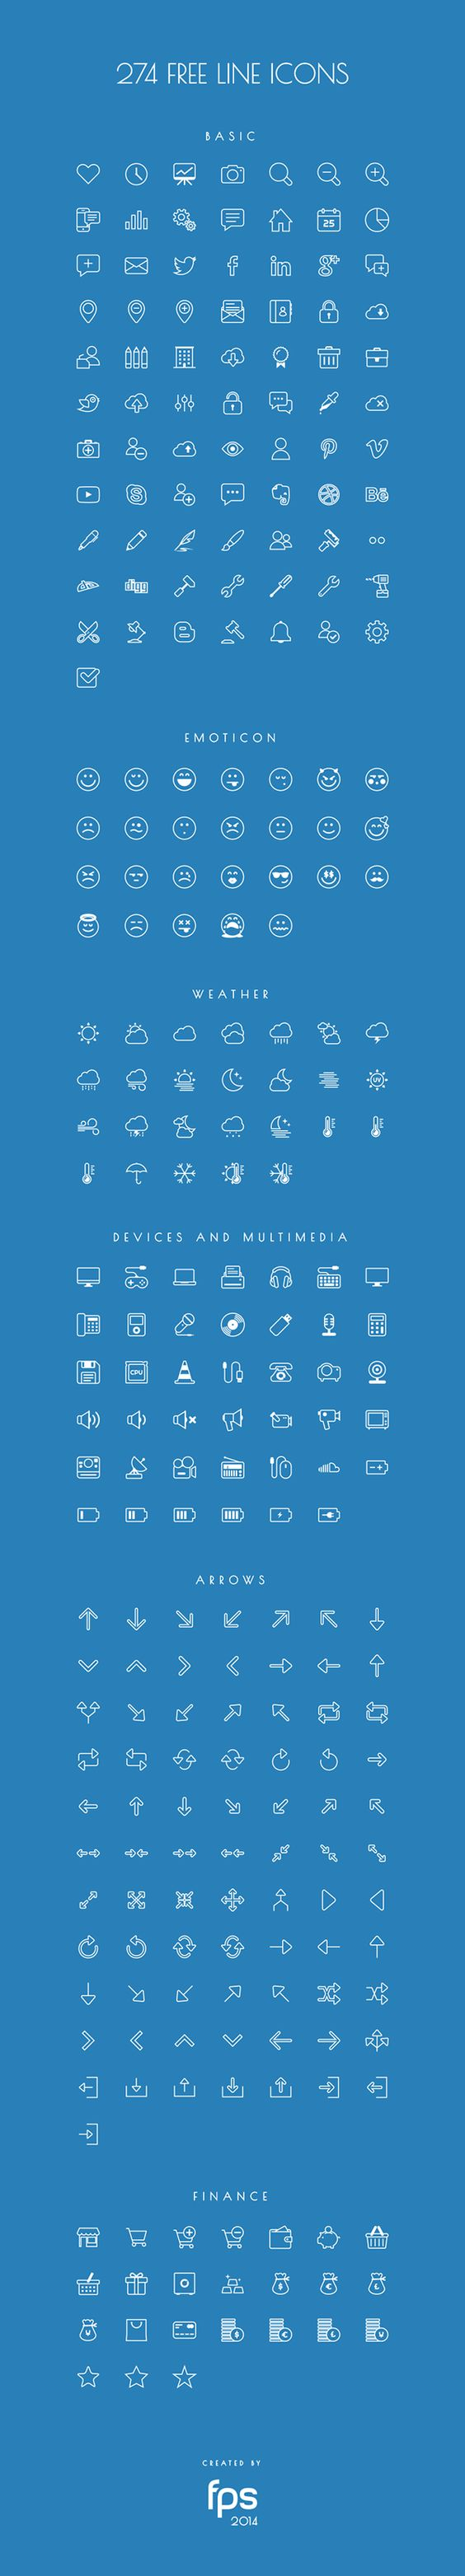 274 Vector Line Icons for free on Behance